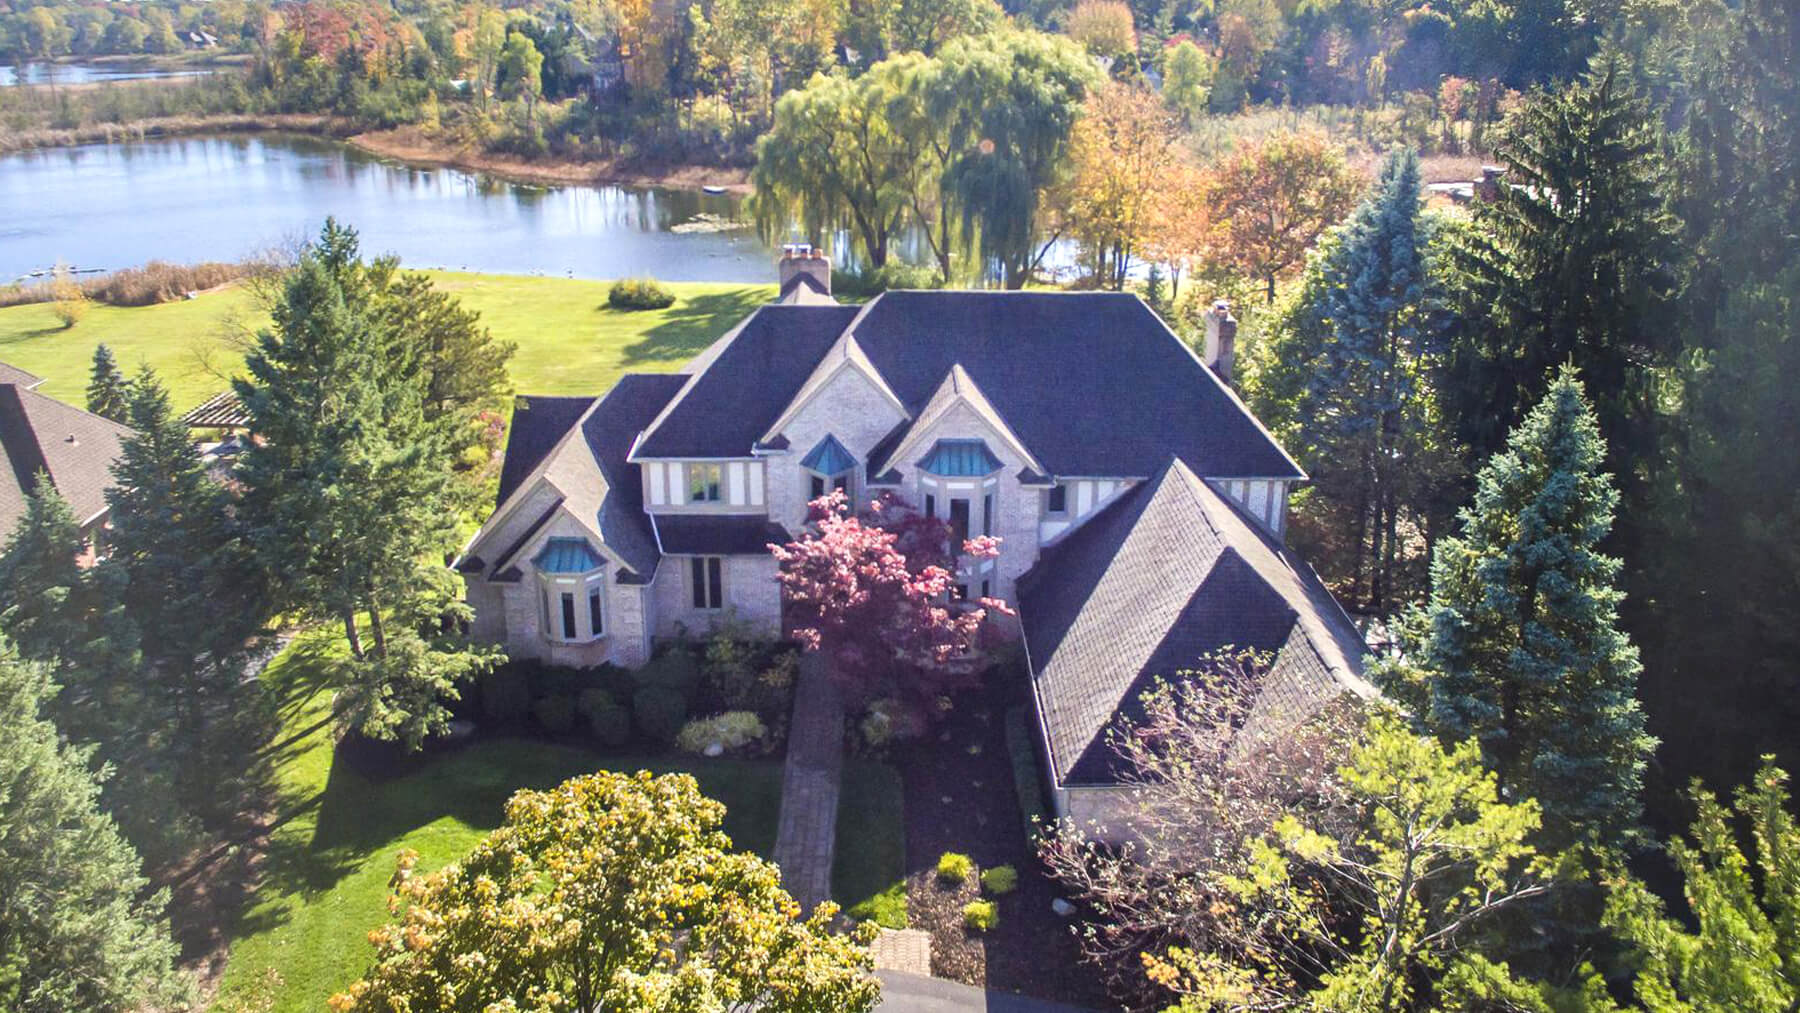 1265 Watercliff - Bloomfield Township, Michigan - $1,400,000 USD